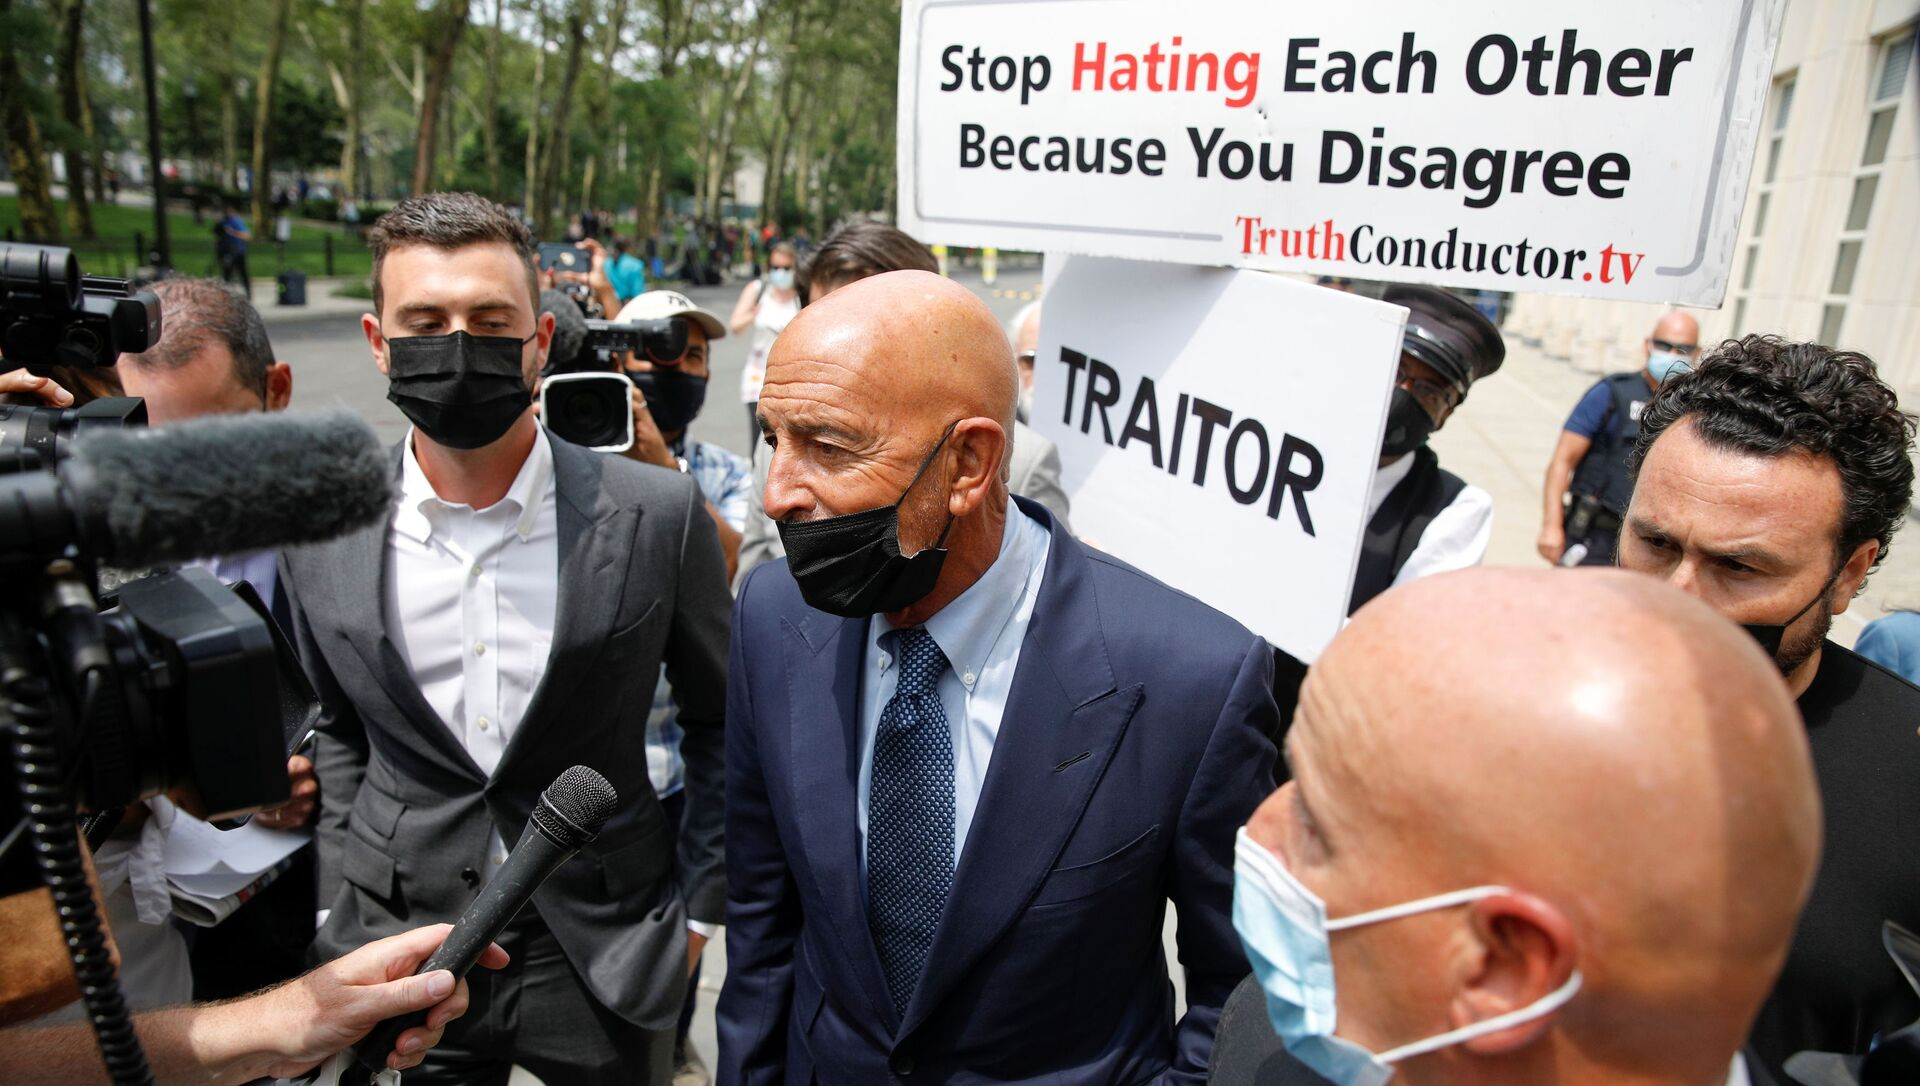 Thomas Barrack, a billionaire friend of Donald Trump who chaired the former president's inaugural fund, exits following his arraignment hearing at the Brooklyn Federal Courthouse in Brooklyn, New York, U.S., July 26, 2021. - Sputnik International, 1920, 26.07.2021